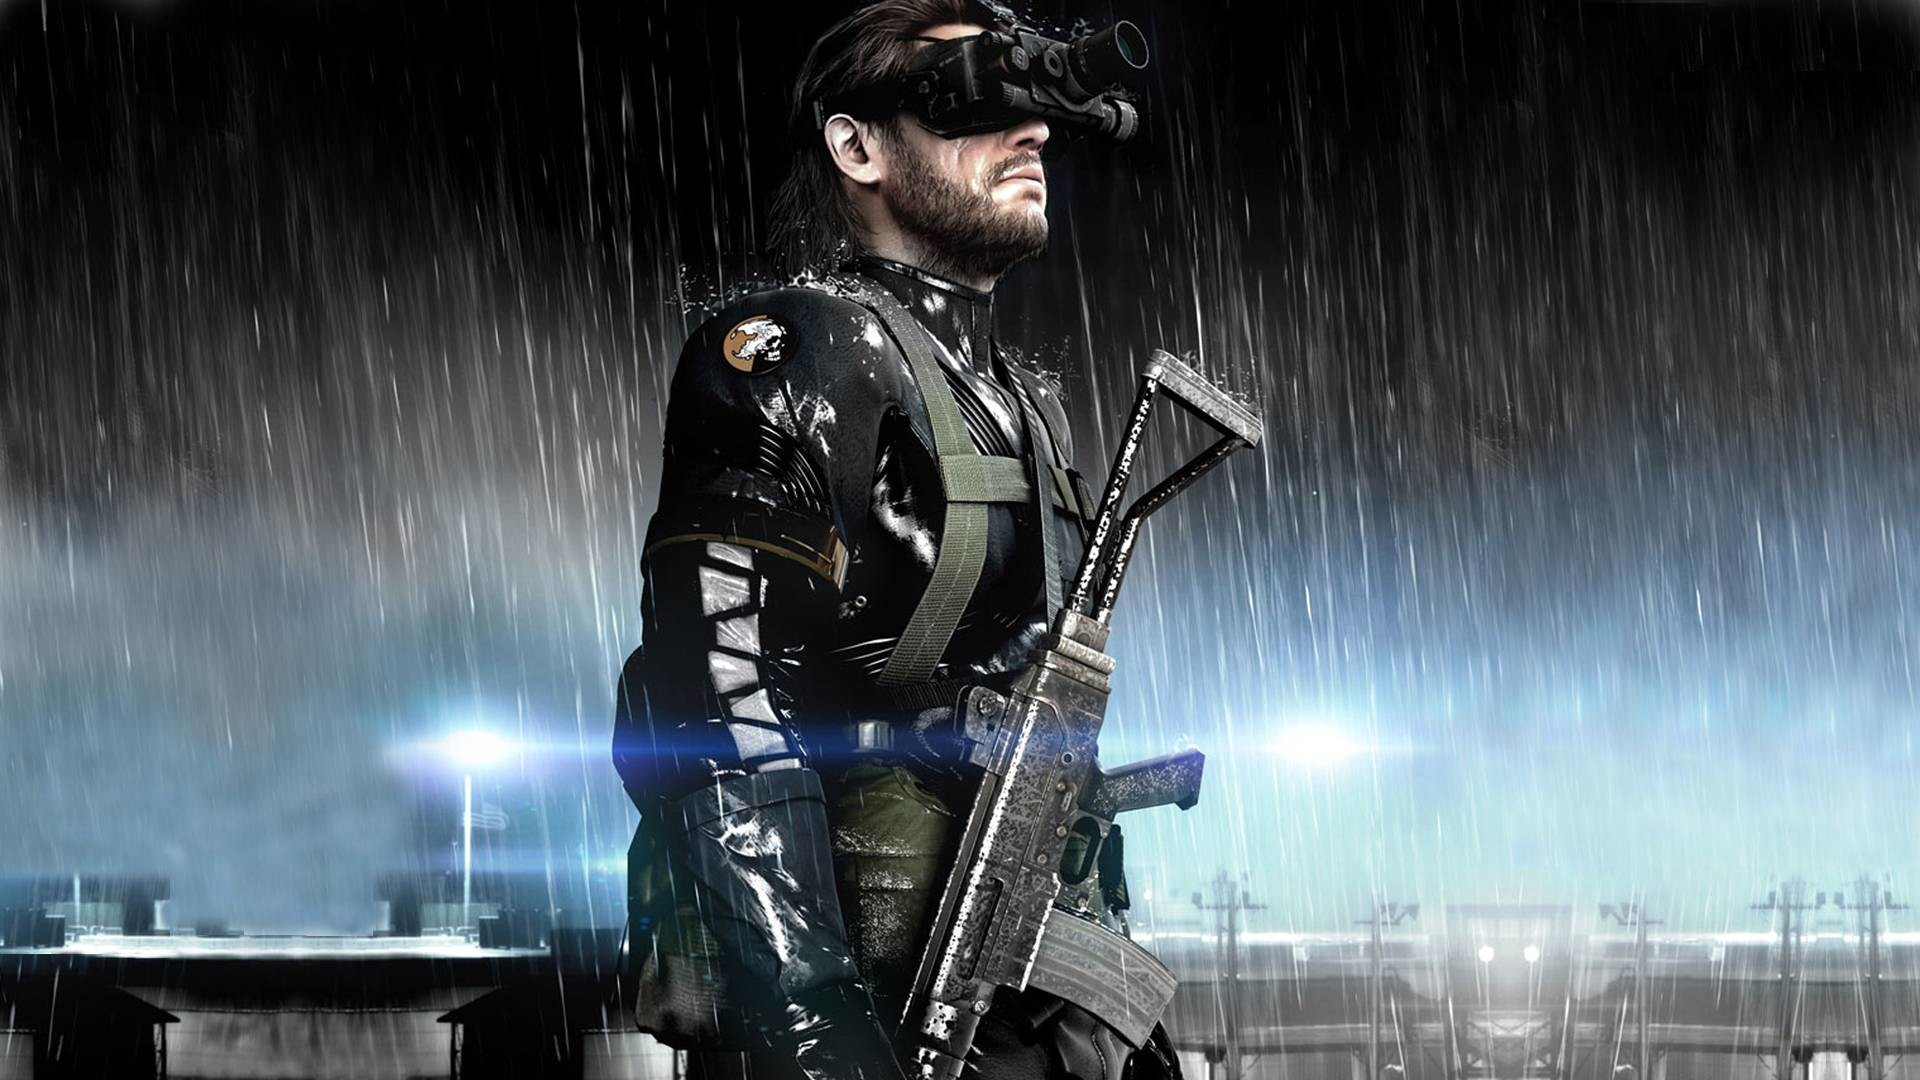 Metal Gear Solid 5 Wallpapers 79 Images